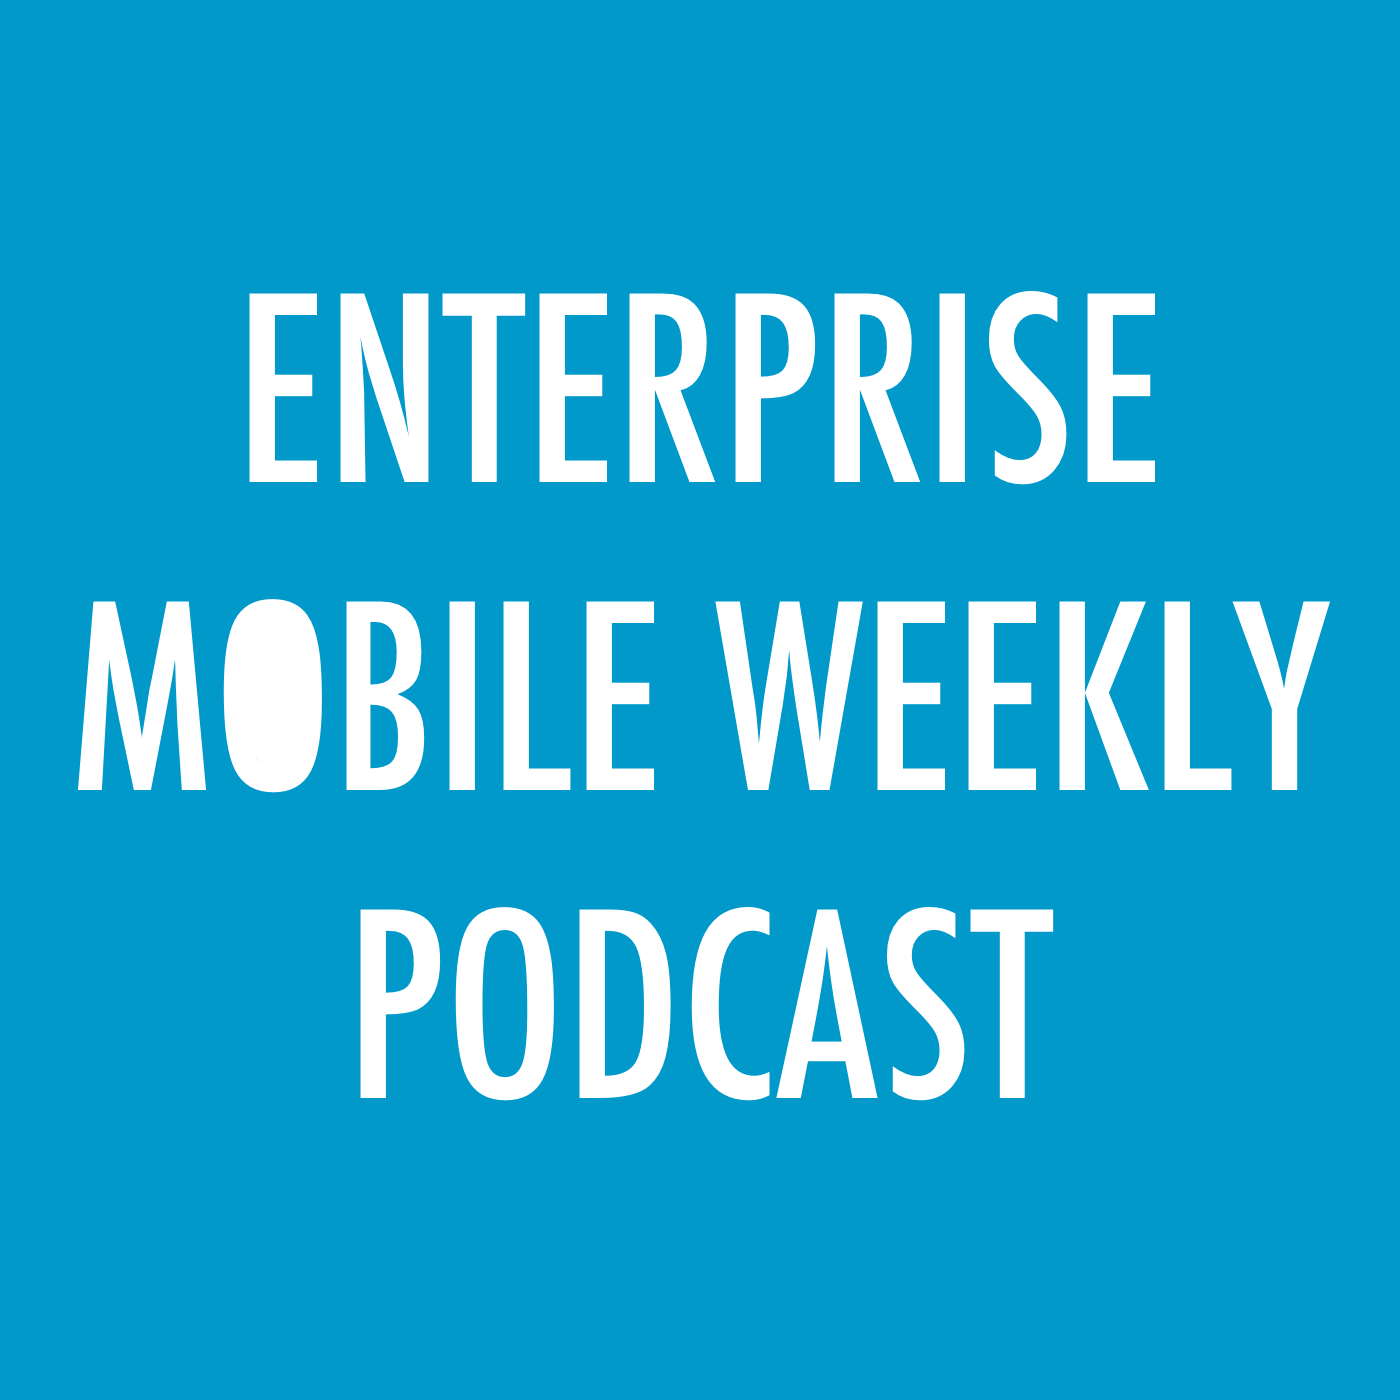 Enterprise Mobile Weekly